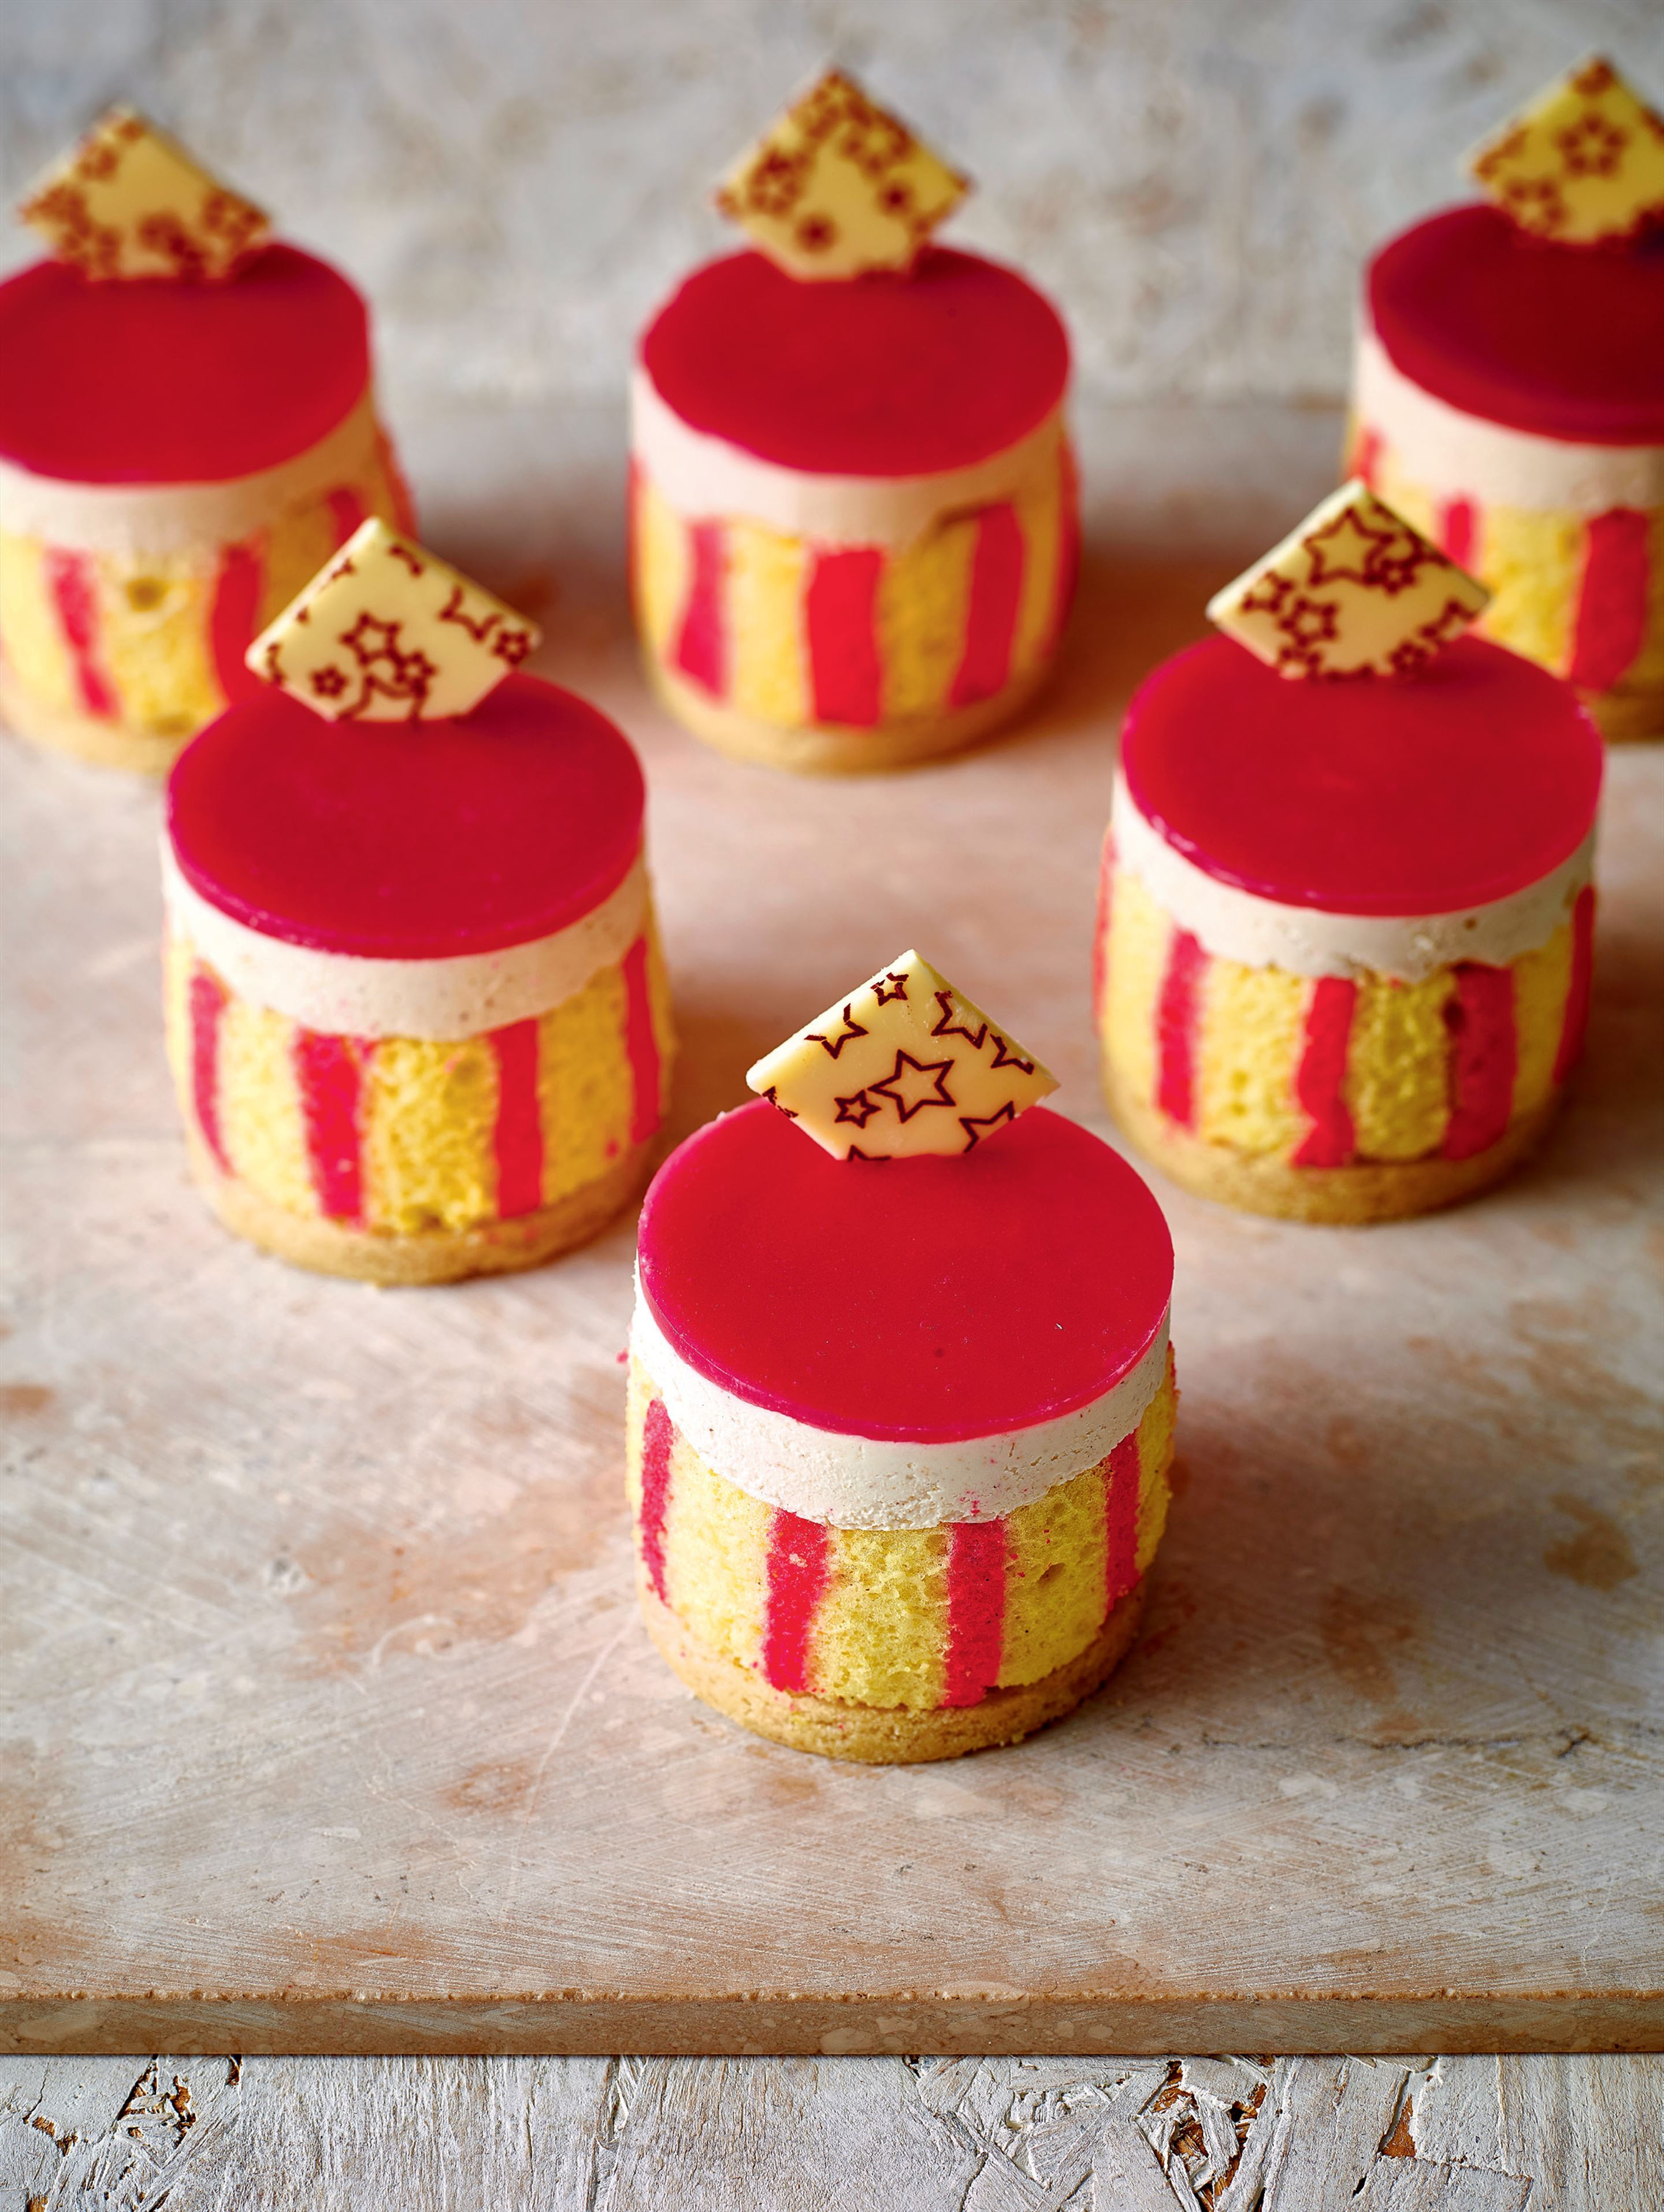 Rhubarb and custard entremets